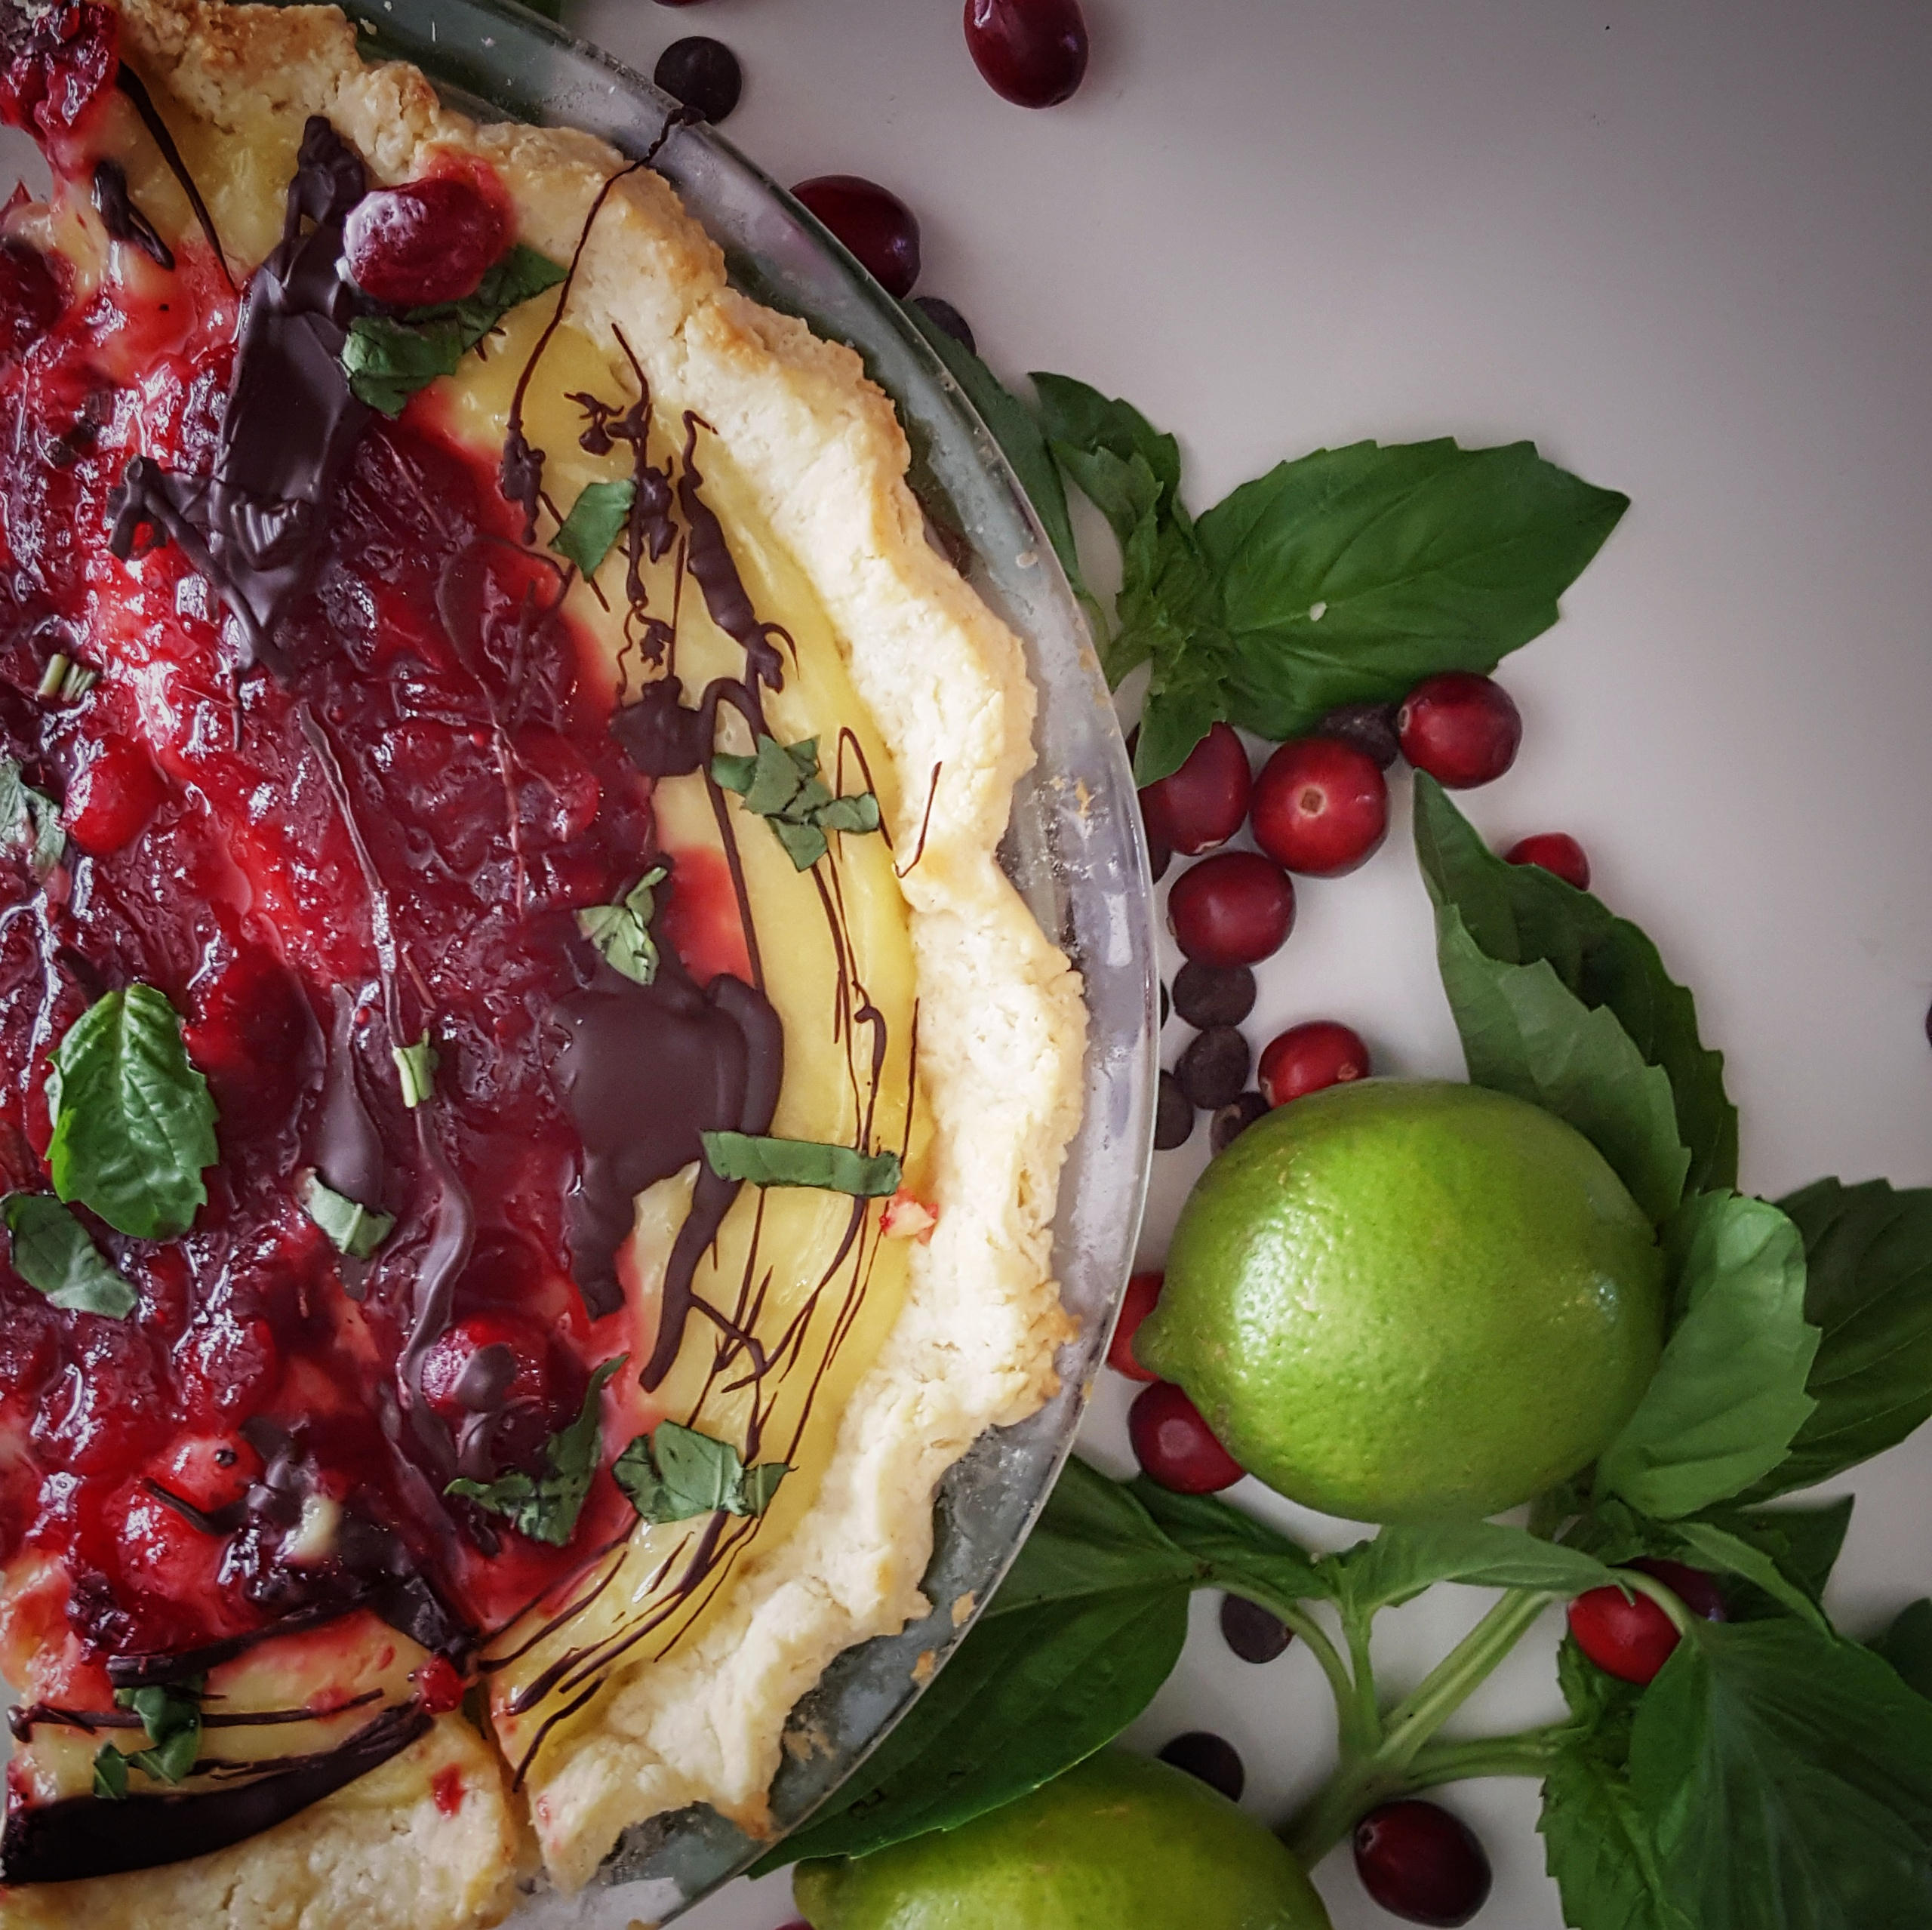 Basil-Infused Lime Curd Tart Topped Cranberry Orange Compote